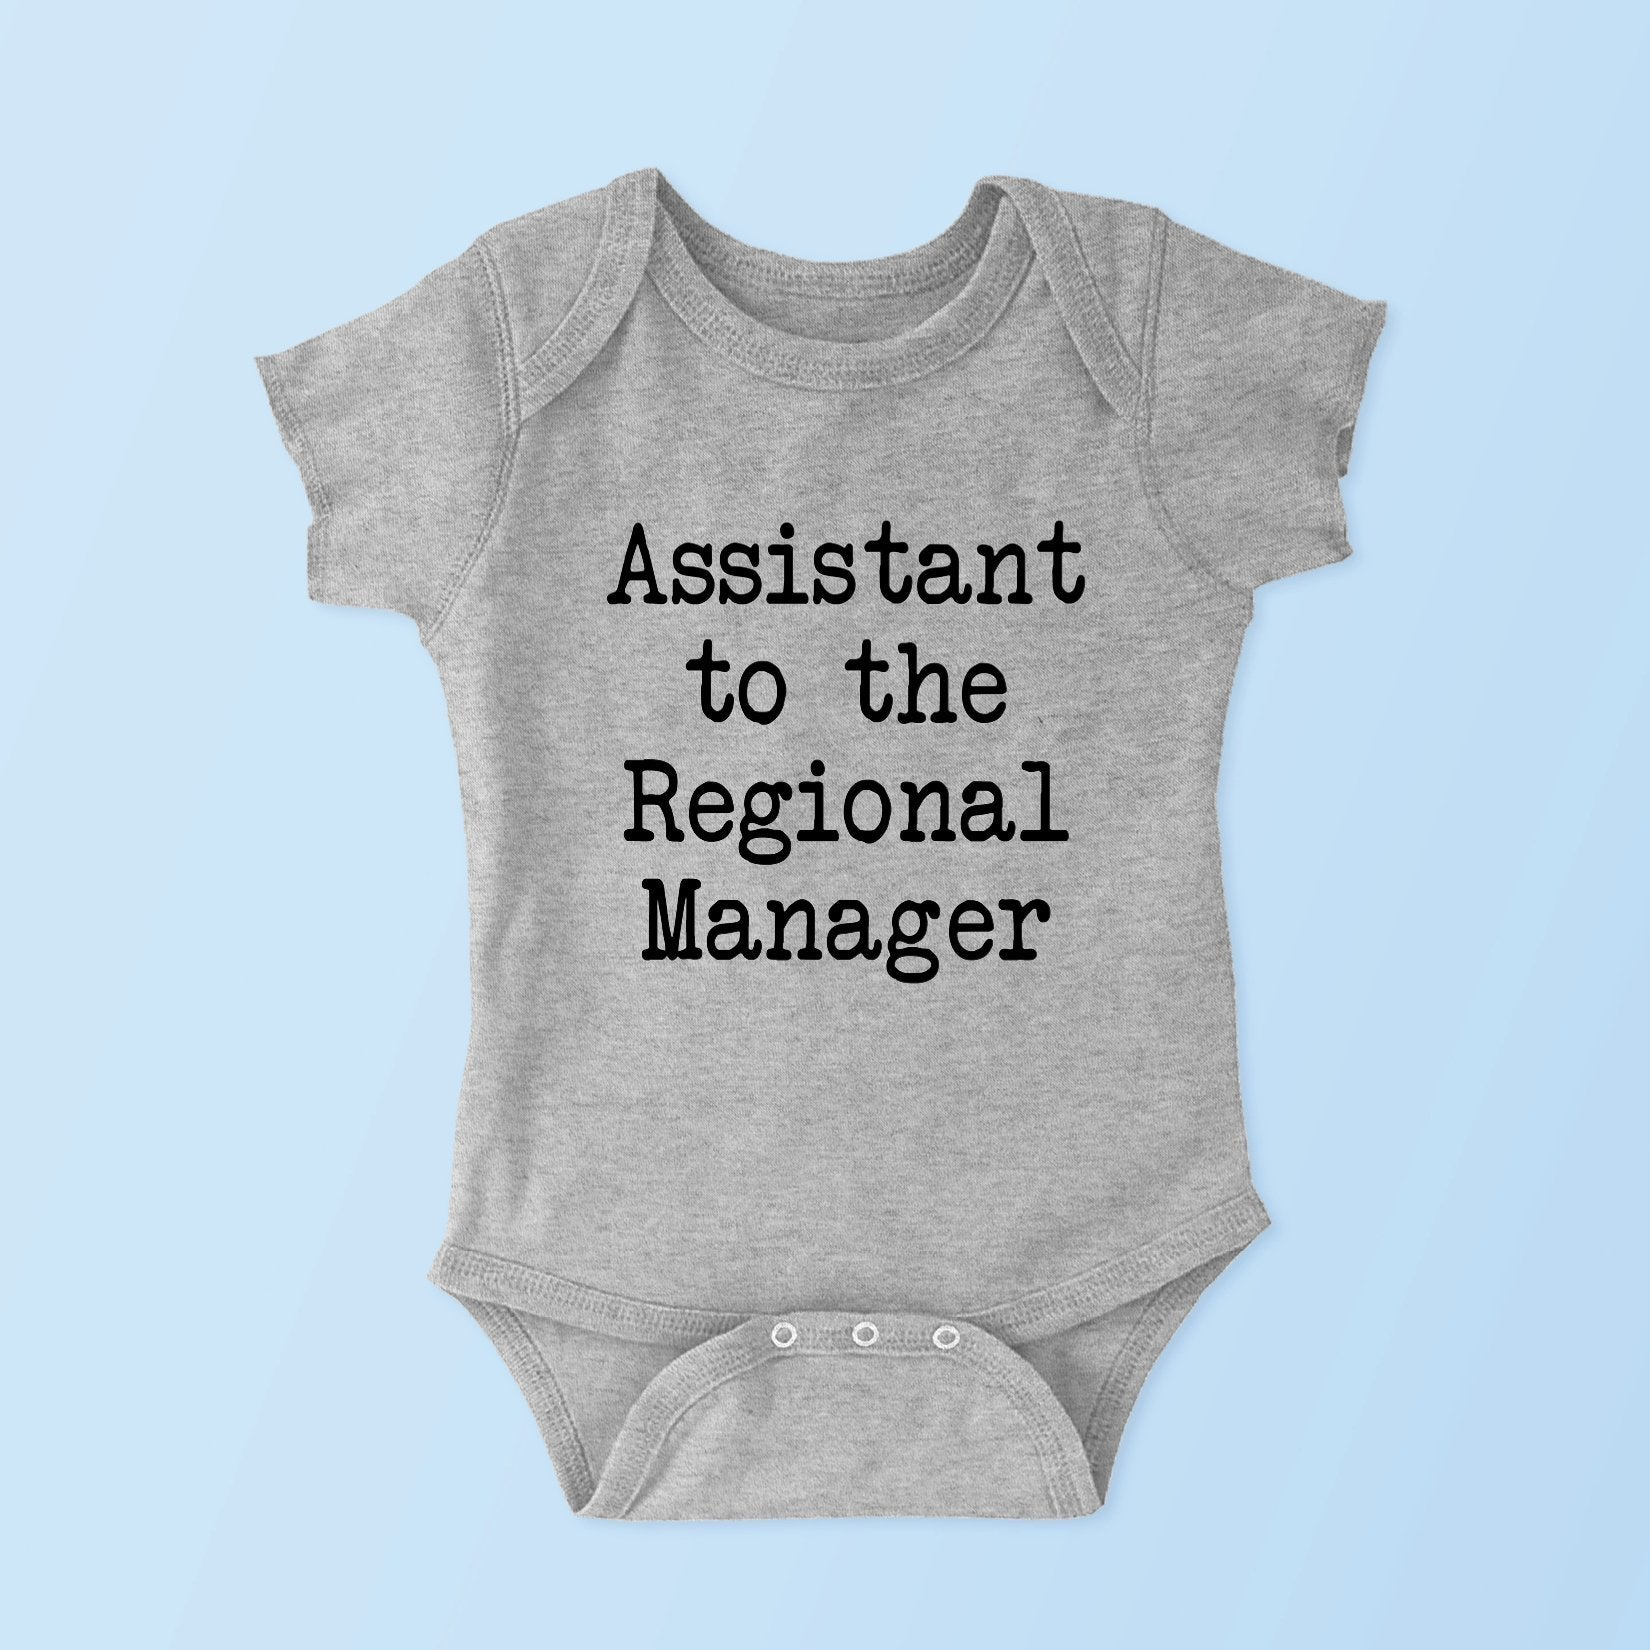 54f02a153a Assistant to the Regional Manager (Additional Baby Onesie   Toddler Youth  Tee) Cole ...